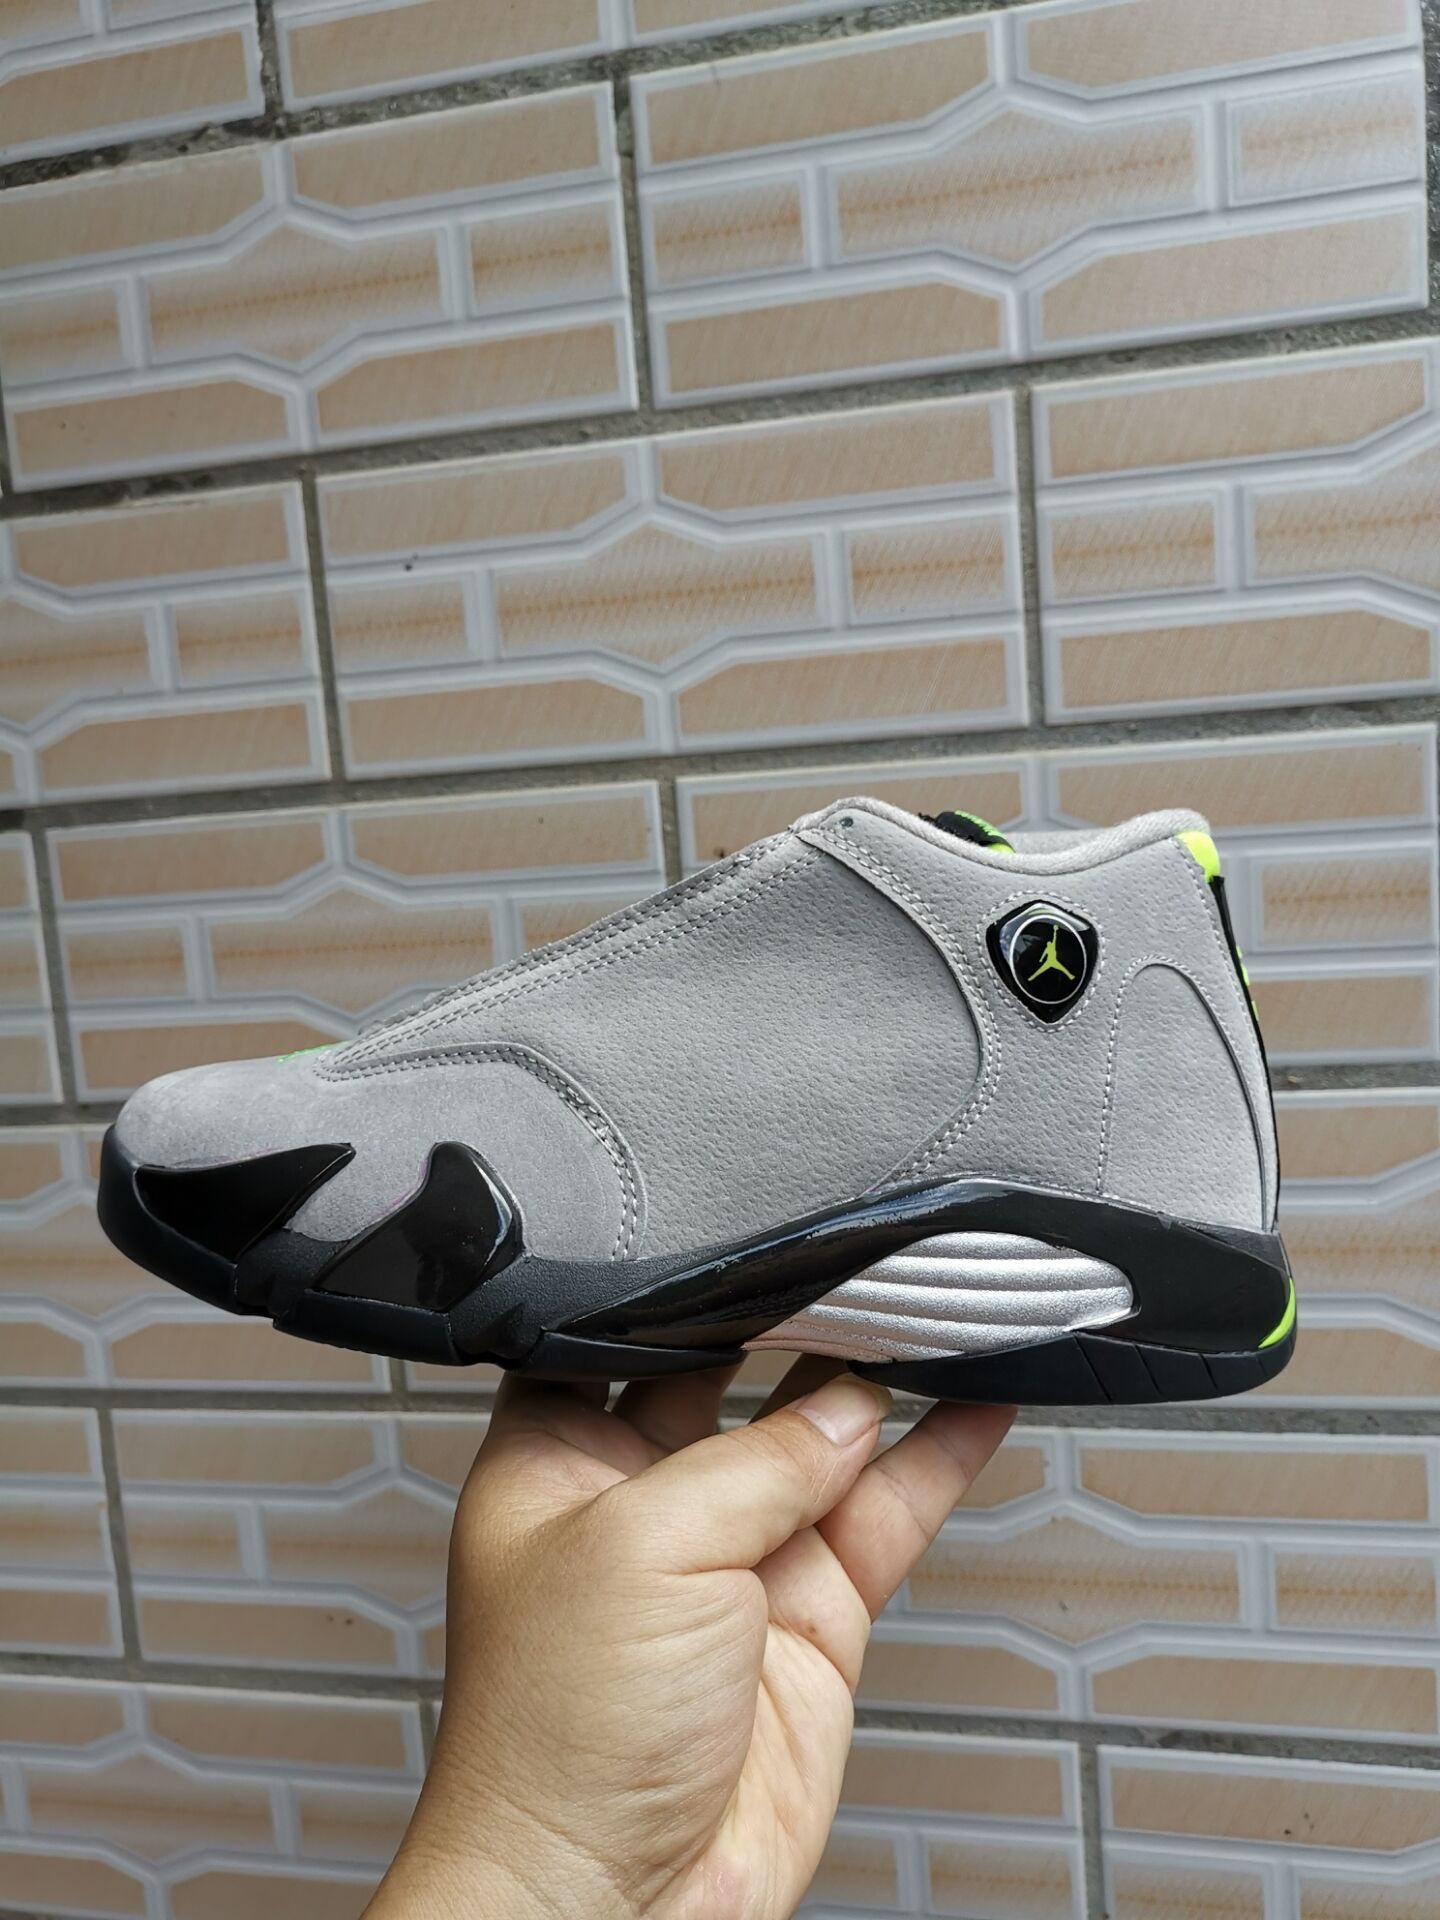 2019 Air Jordan 14 Retro Grey Black